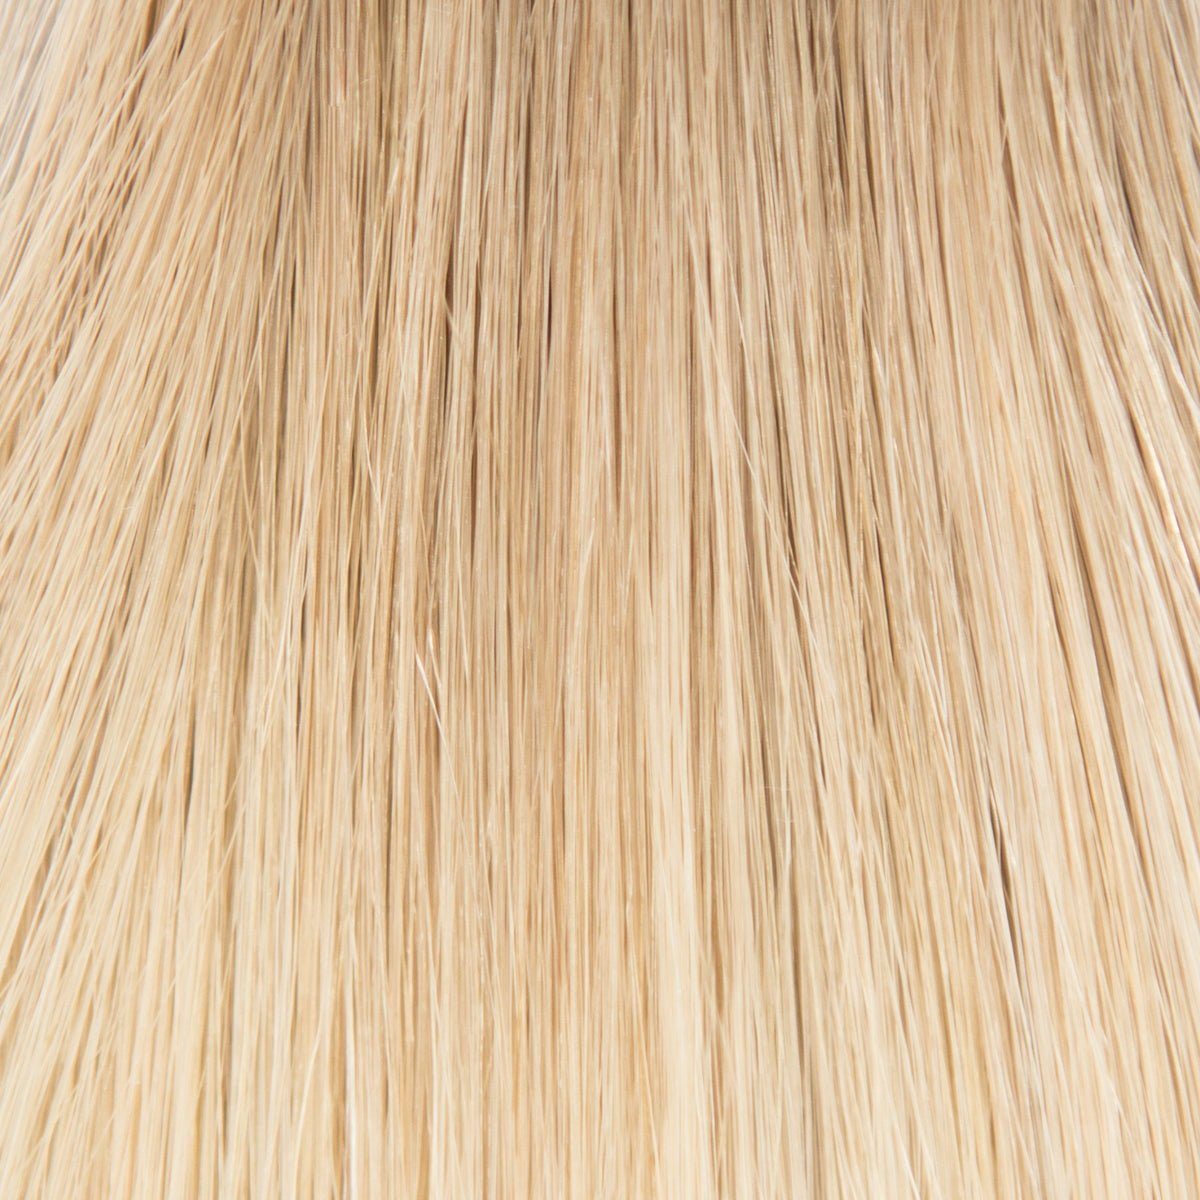 Laced Hair Machine Sewn Weft Extensions Rooted #8/D16/22 (Rooted Buttercream)